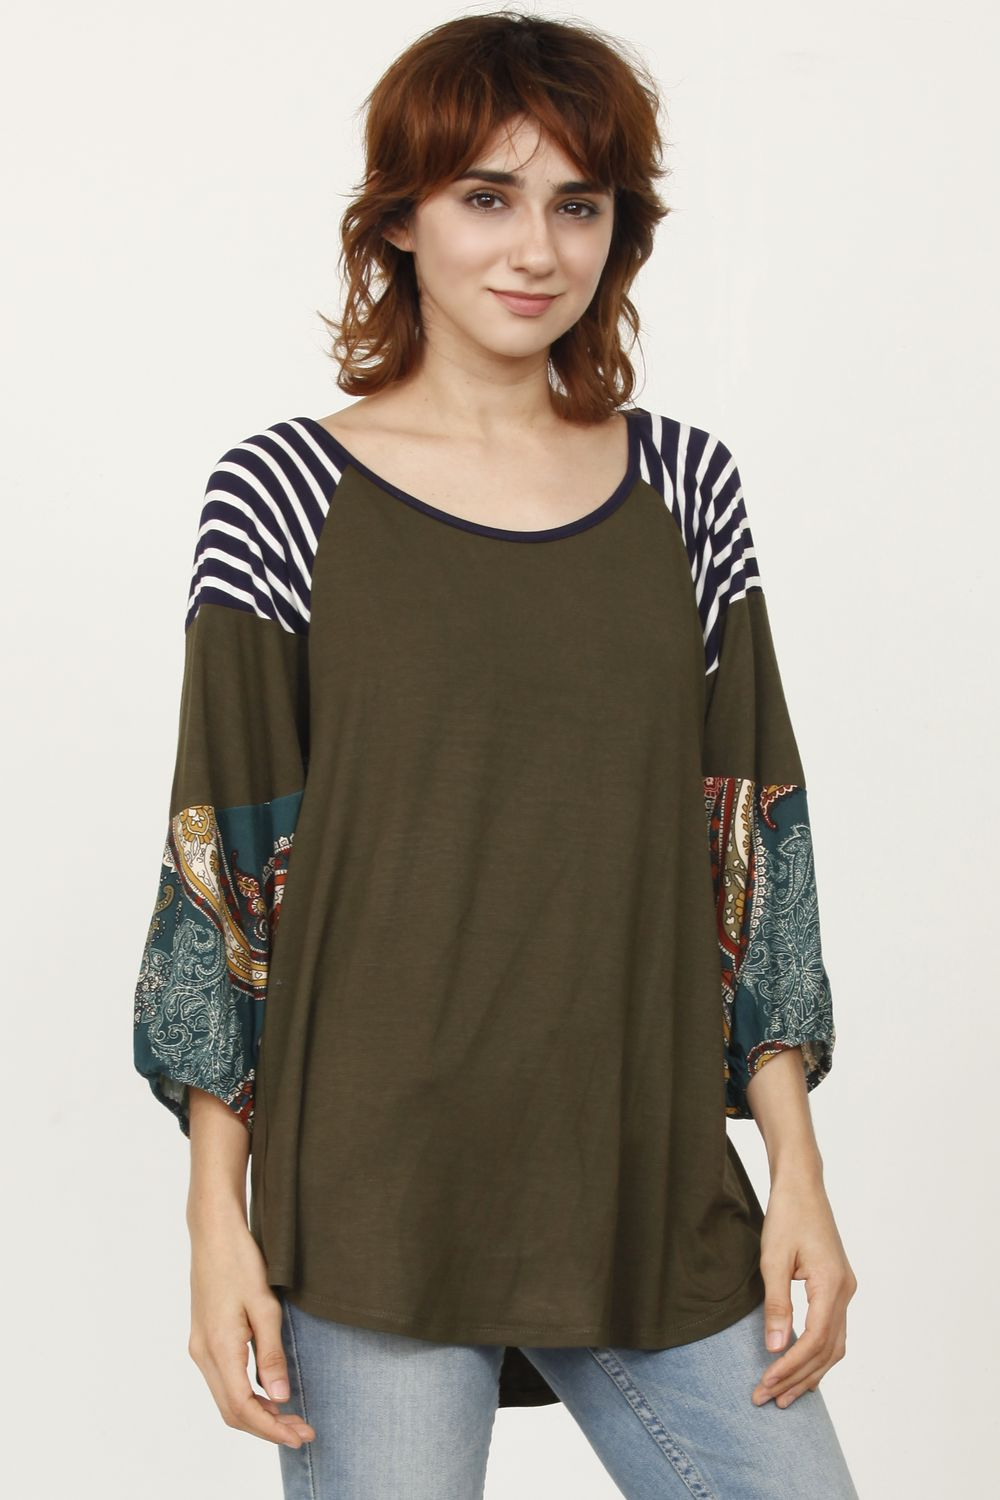 Olive Paisley 3/4 Bishop Sleeve Raglan Top